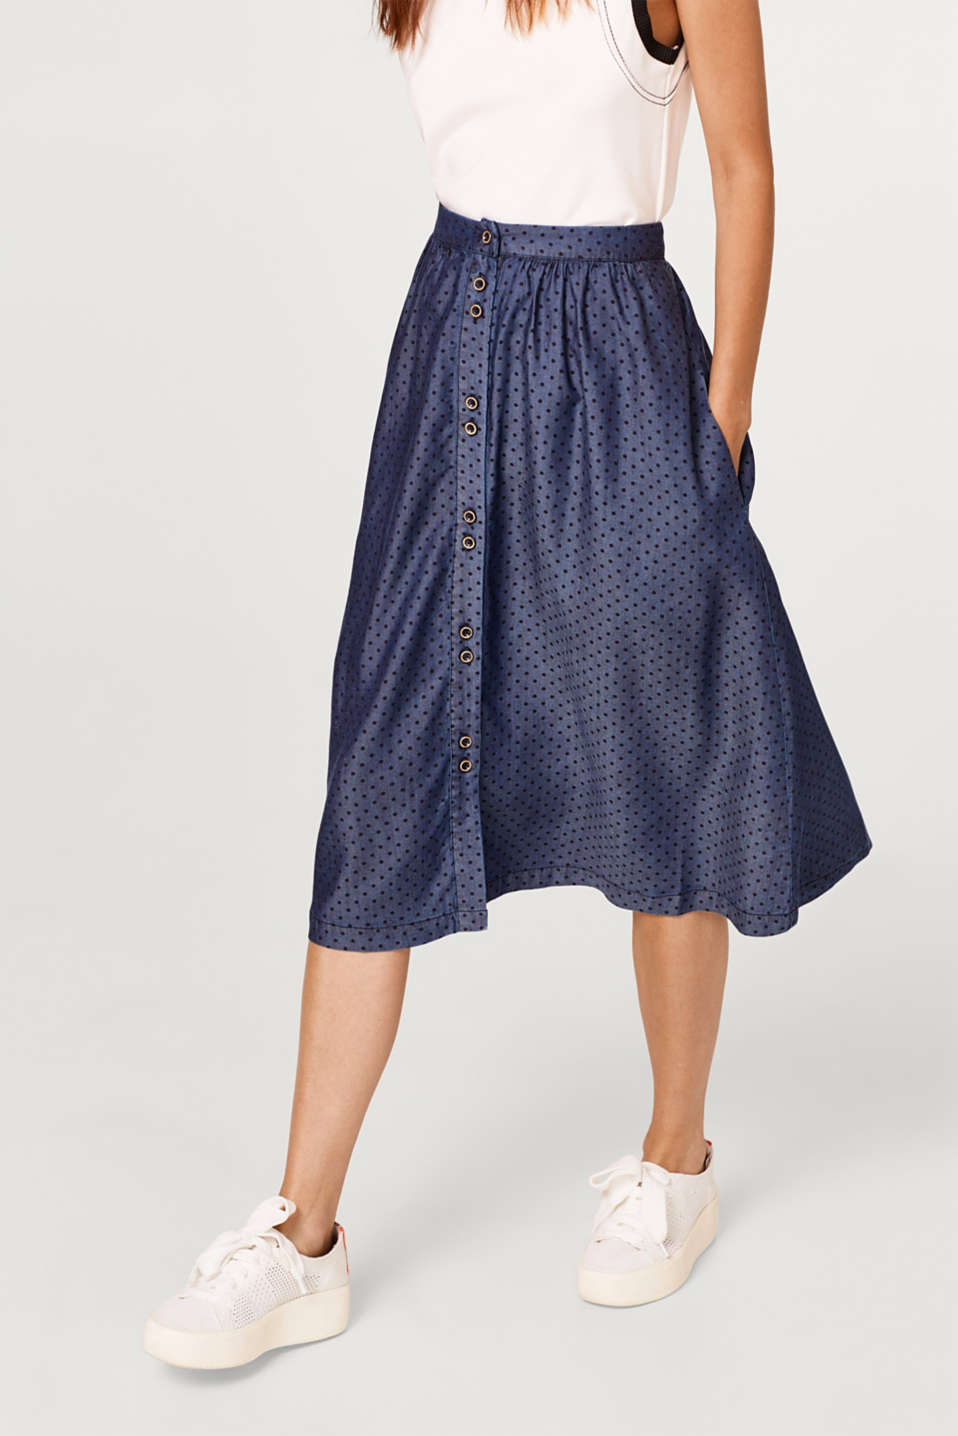 edc - Flared skirt with polka dots, in lyocell